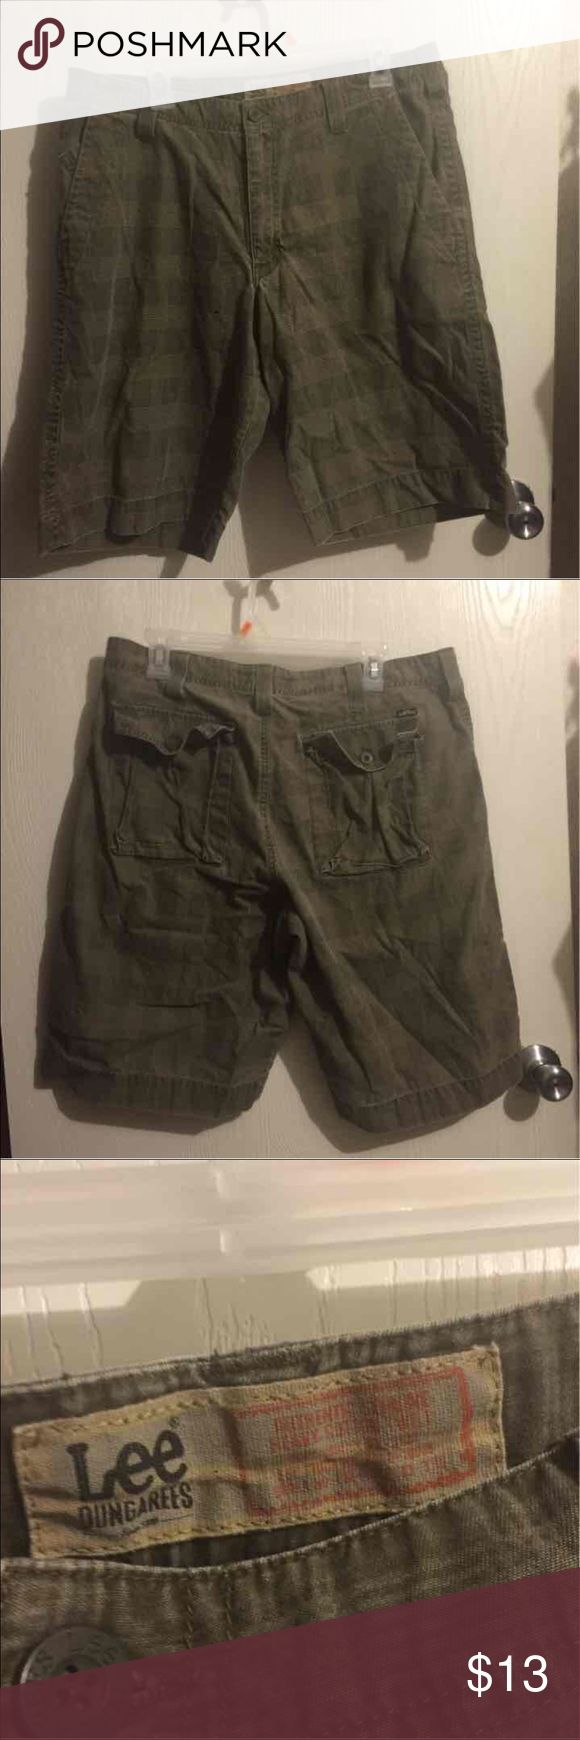 Mens Lee DunGarees Shorts size 34 ❇️ Mens Lee DunGarees Shorts size 34❇️ Lee Shorts Flat Front